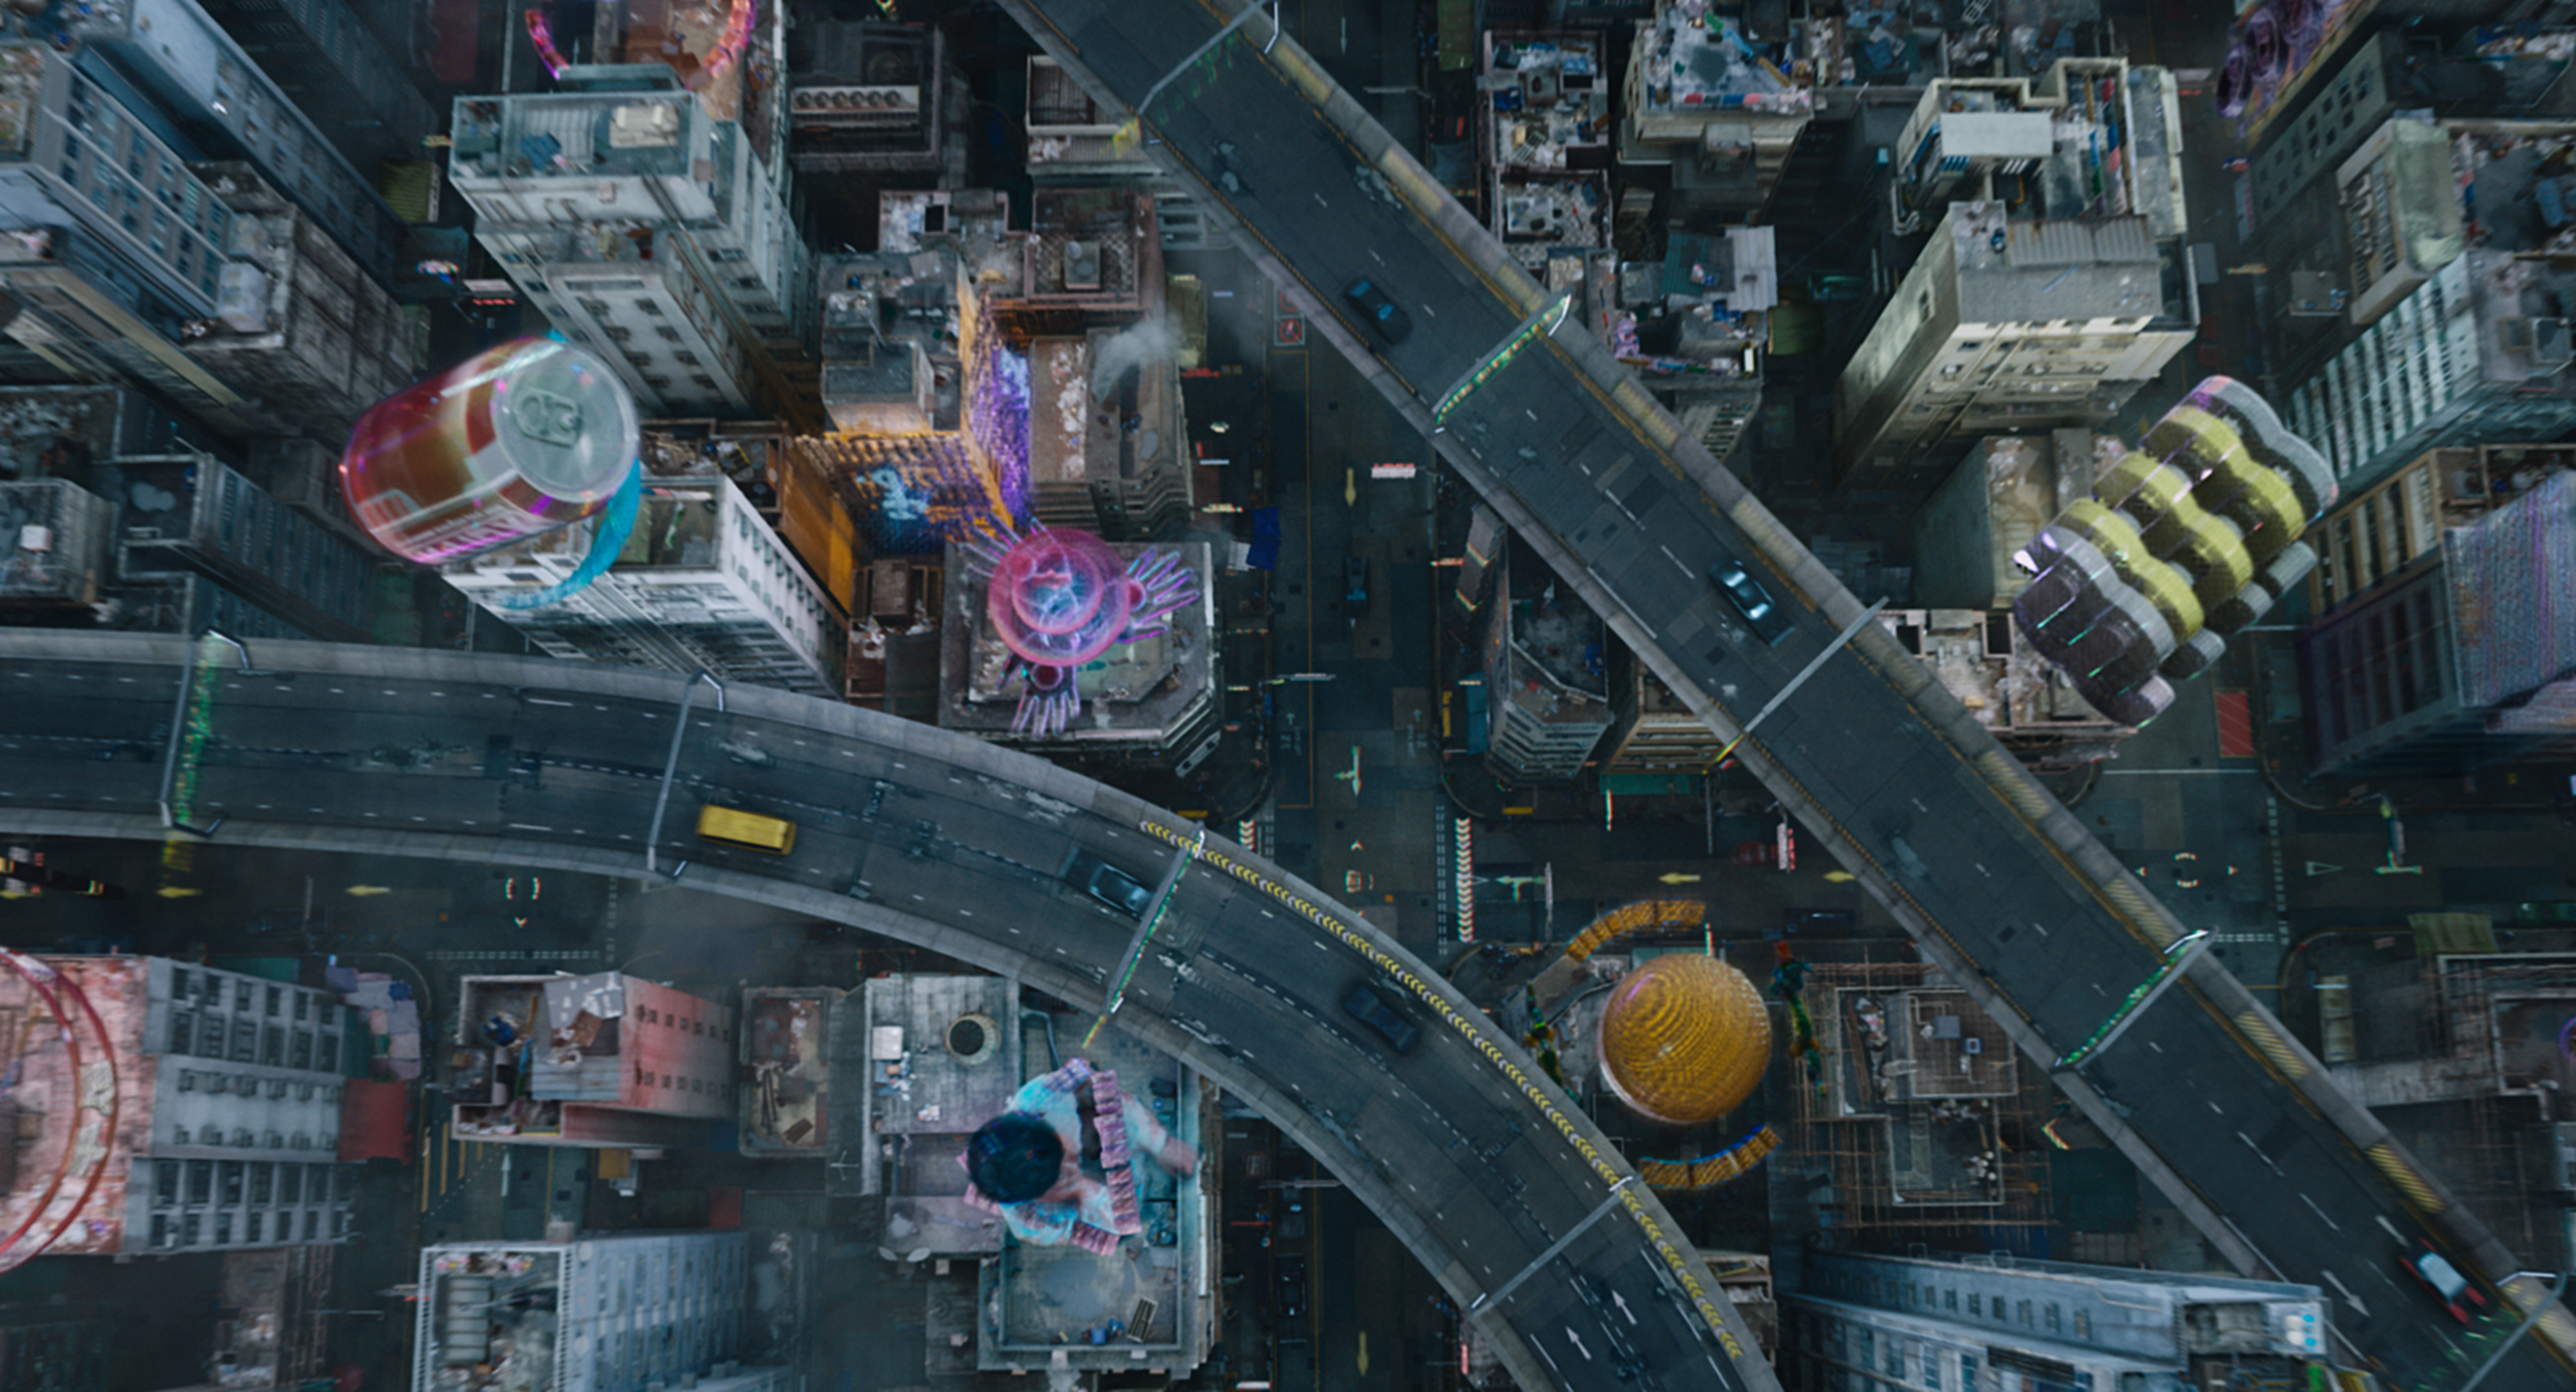 How Ghost In The Shell Vfx Artists Brought Manga To The Big Screen